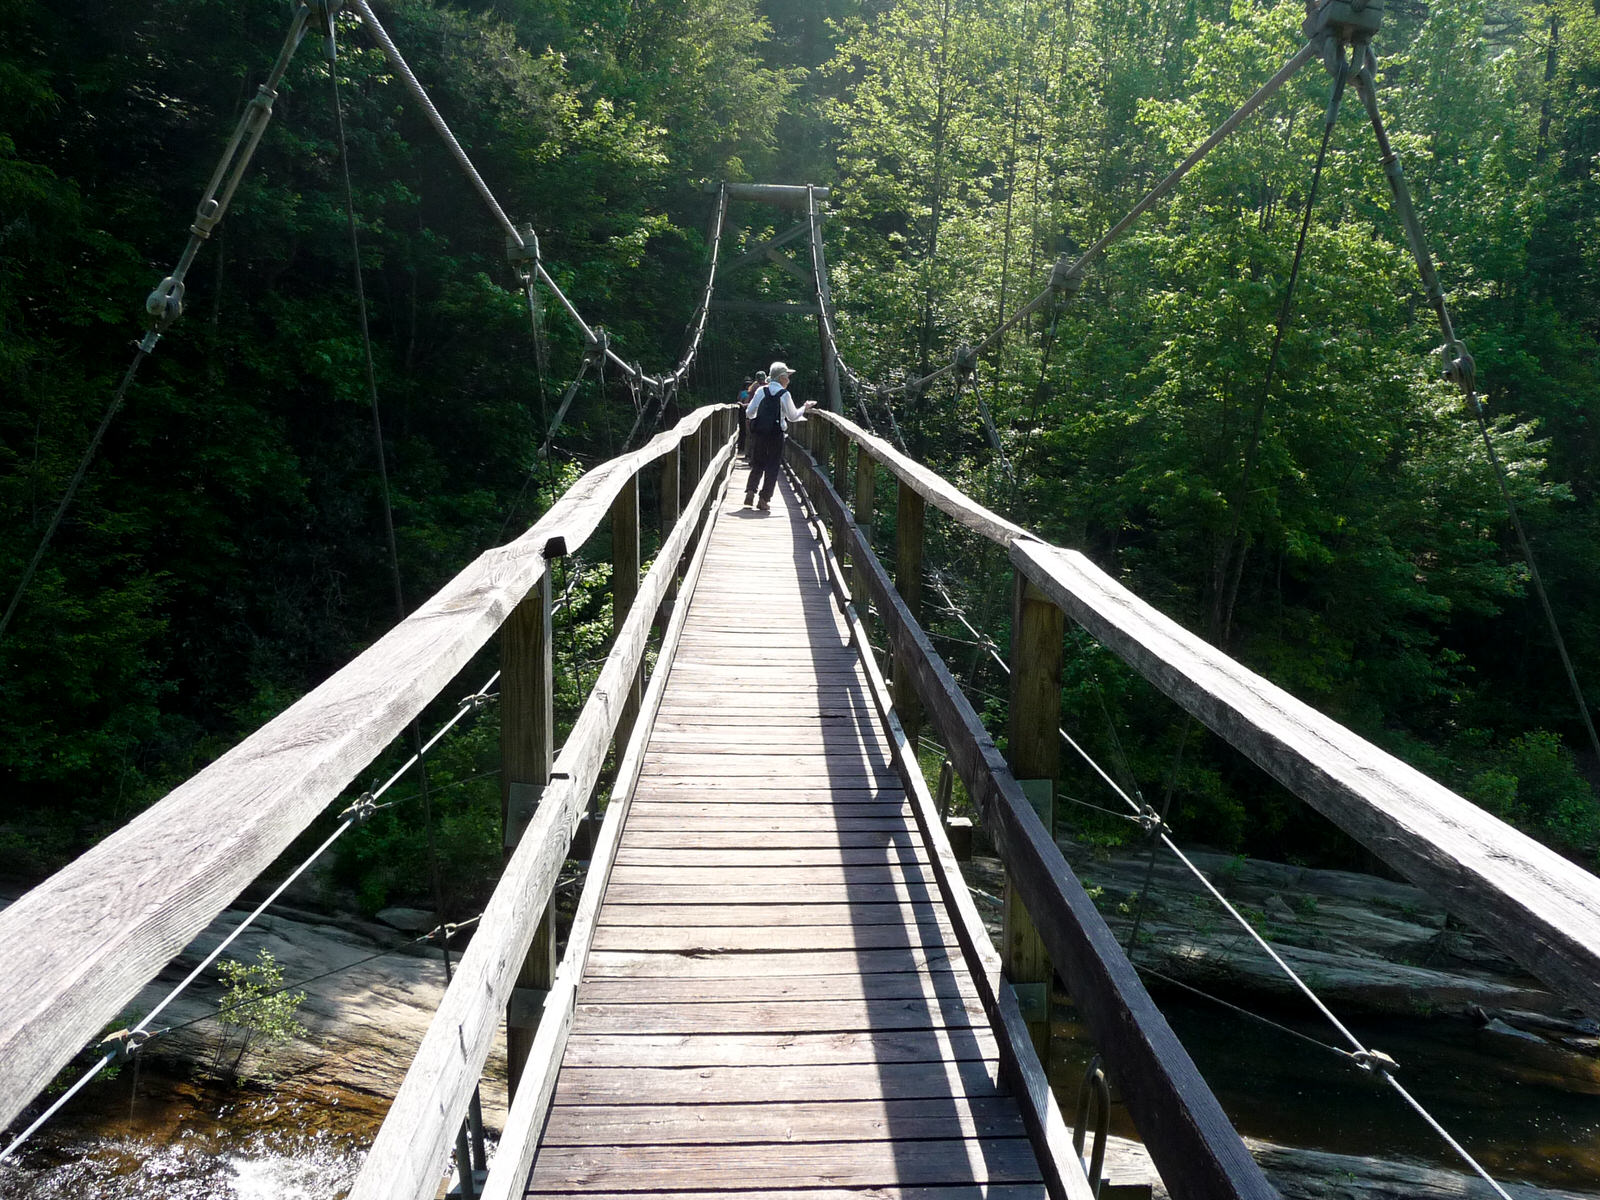 photo: Crossing the Toxaway River suspension bridge. Photo by Debbie Biddle.